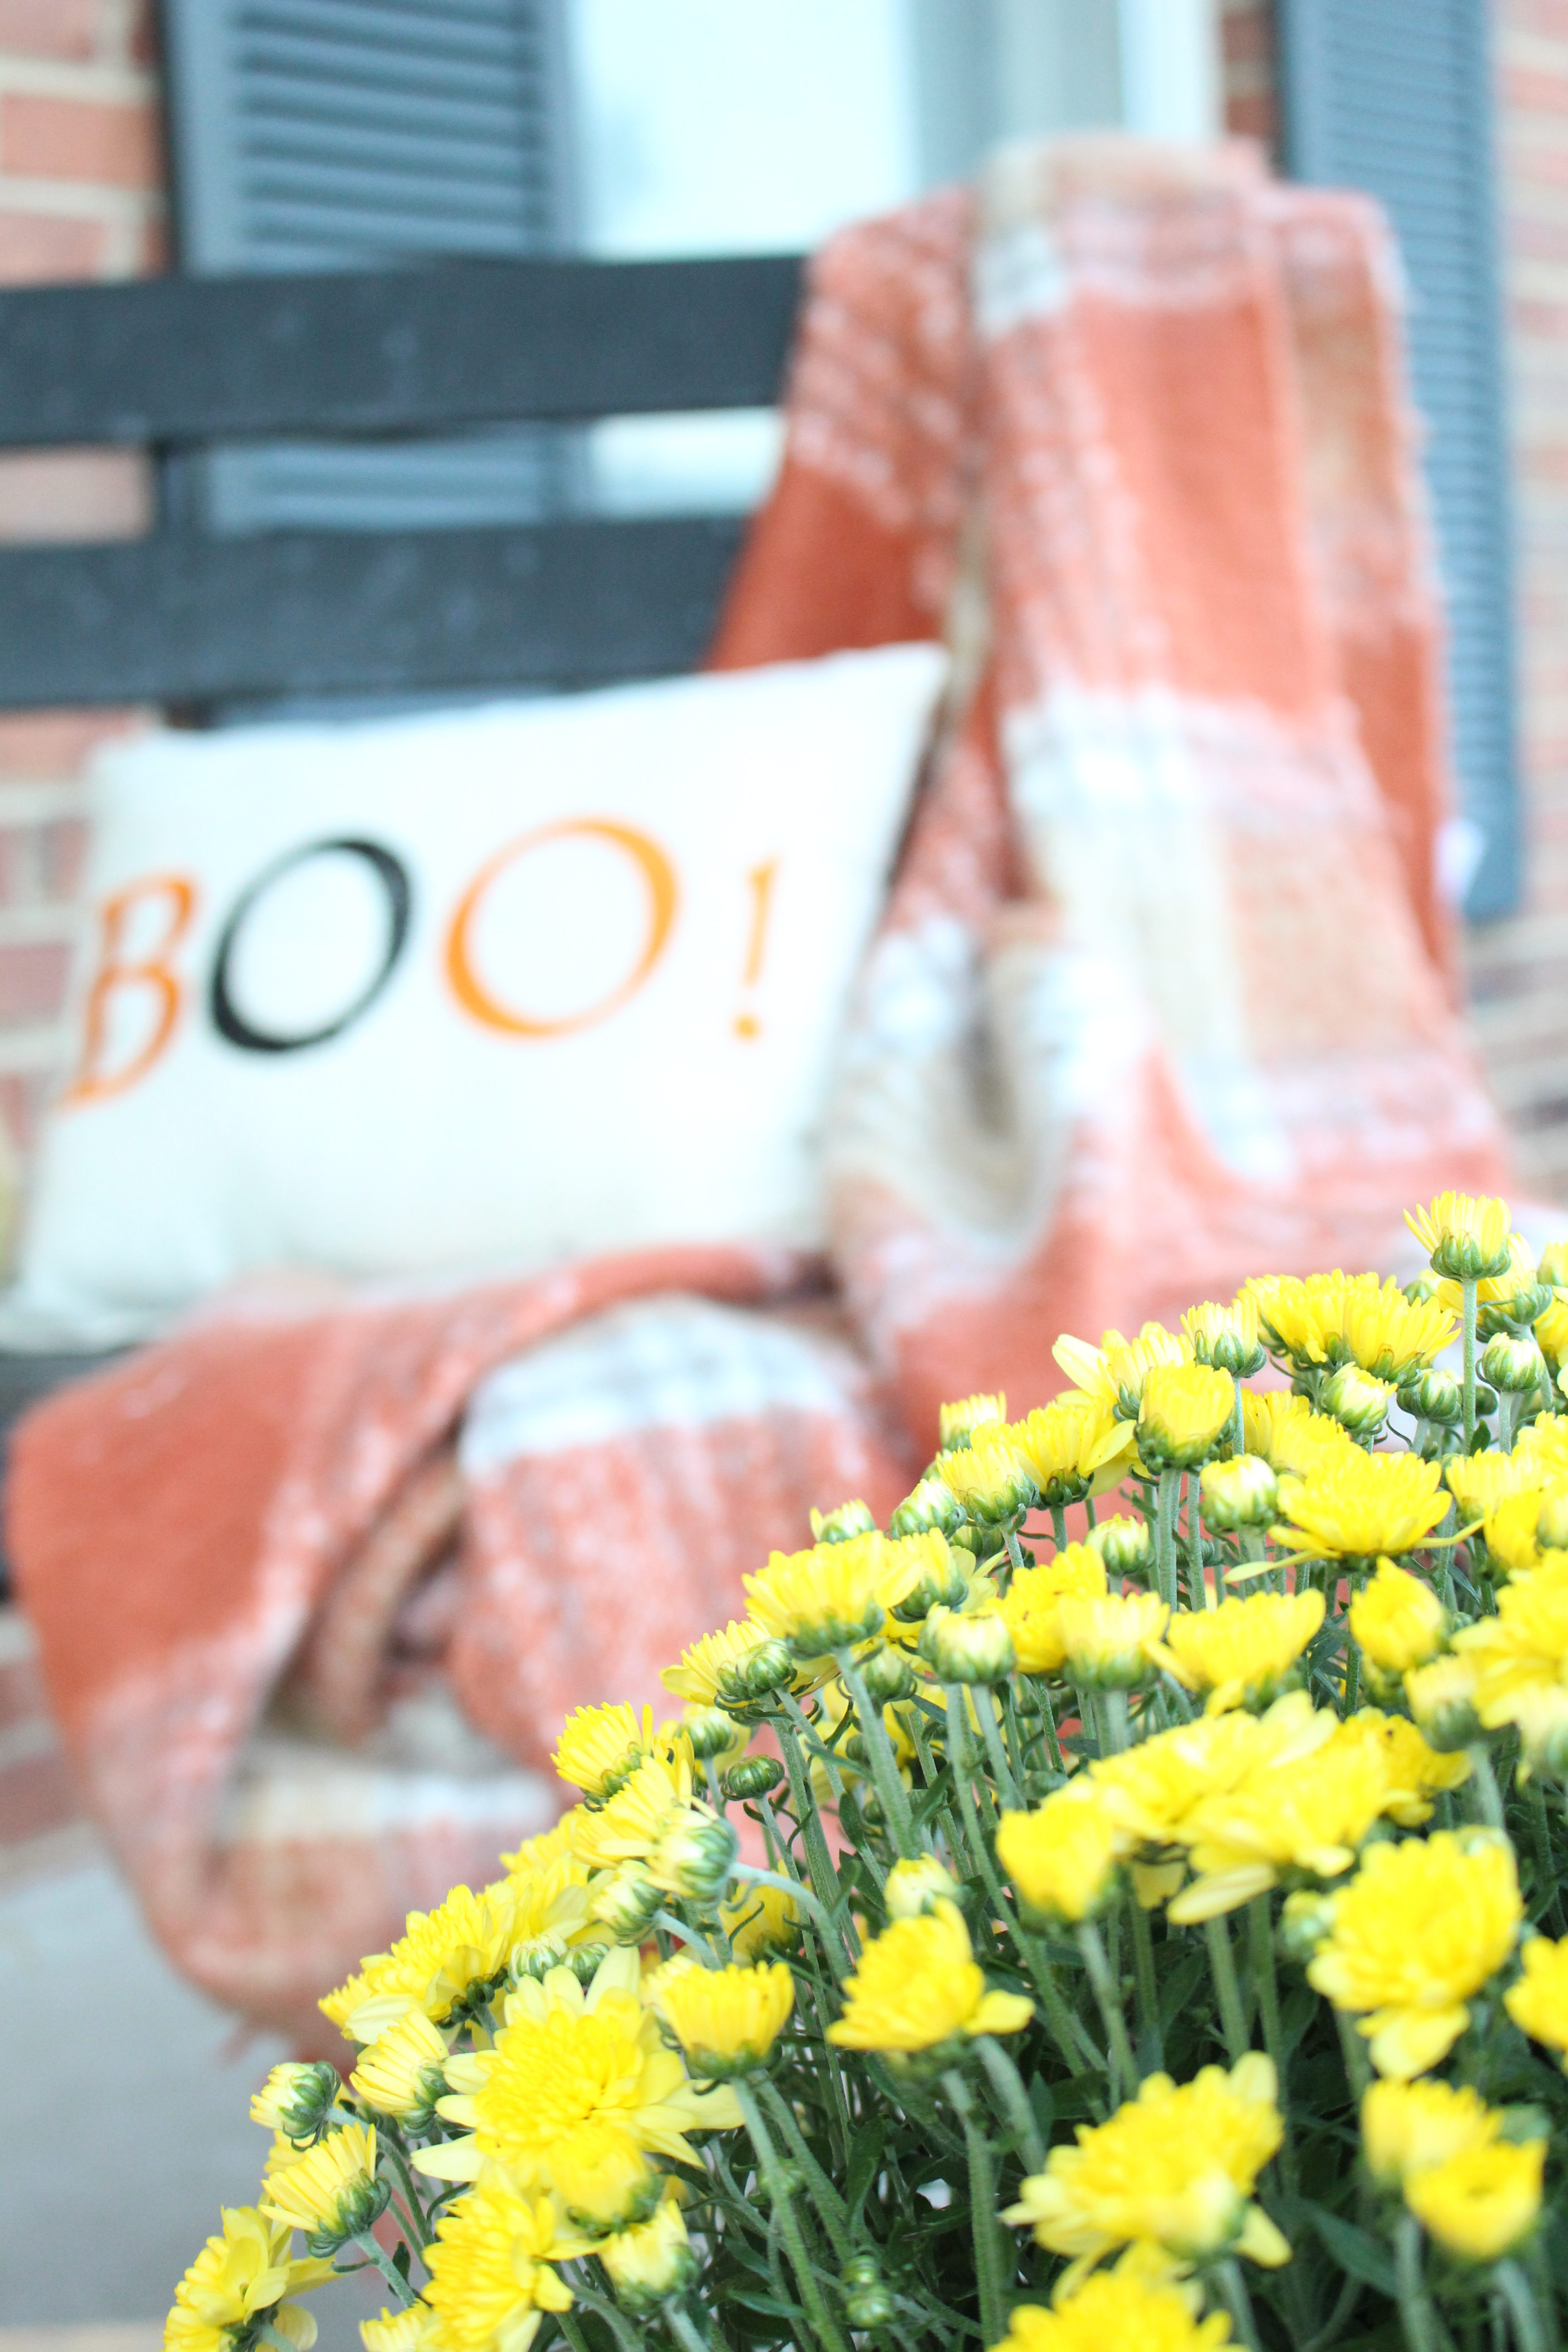 Fall Porch Ideas- Harvest outdoor decor- Decorating for fall- Fall porch- Autumn- Outdoor decor- decorating outdoors for fall- porch- seasonal outdoor decor- pumpkins- mums- Halloween front porch